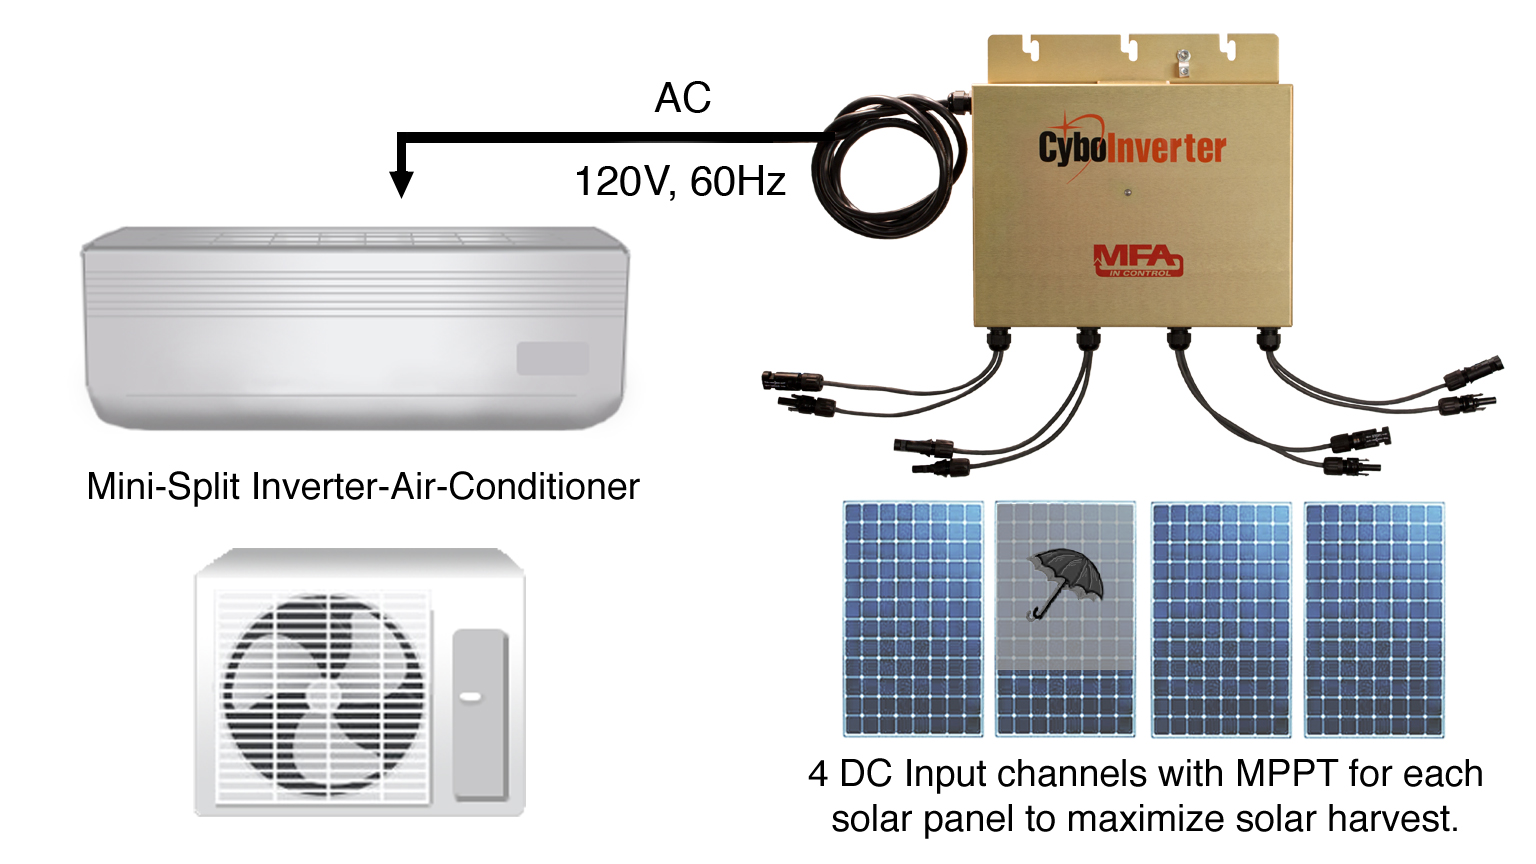 hight resolution of we believe off grid solar air conditioning has huge market potential in many parts of the world where the electric grid is poor or there is no electricity